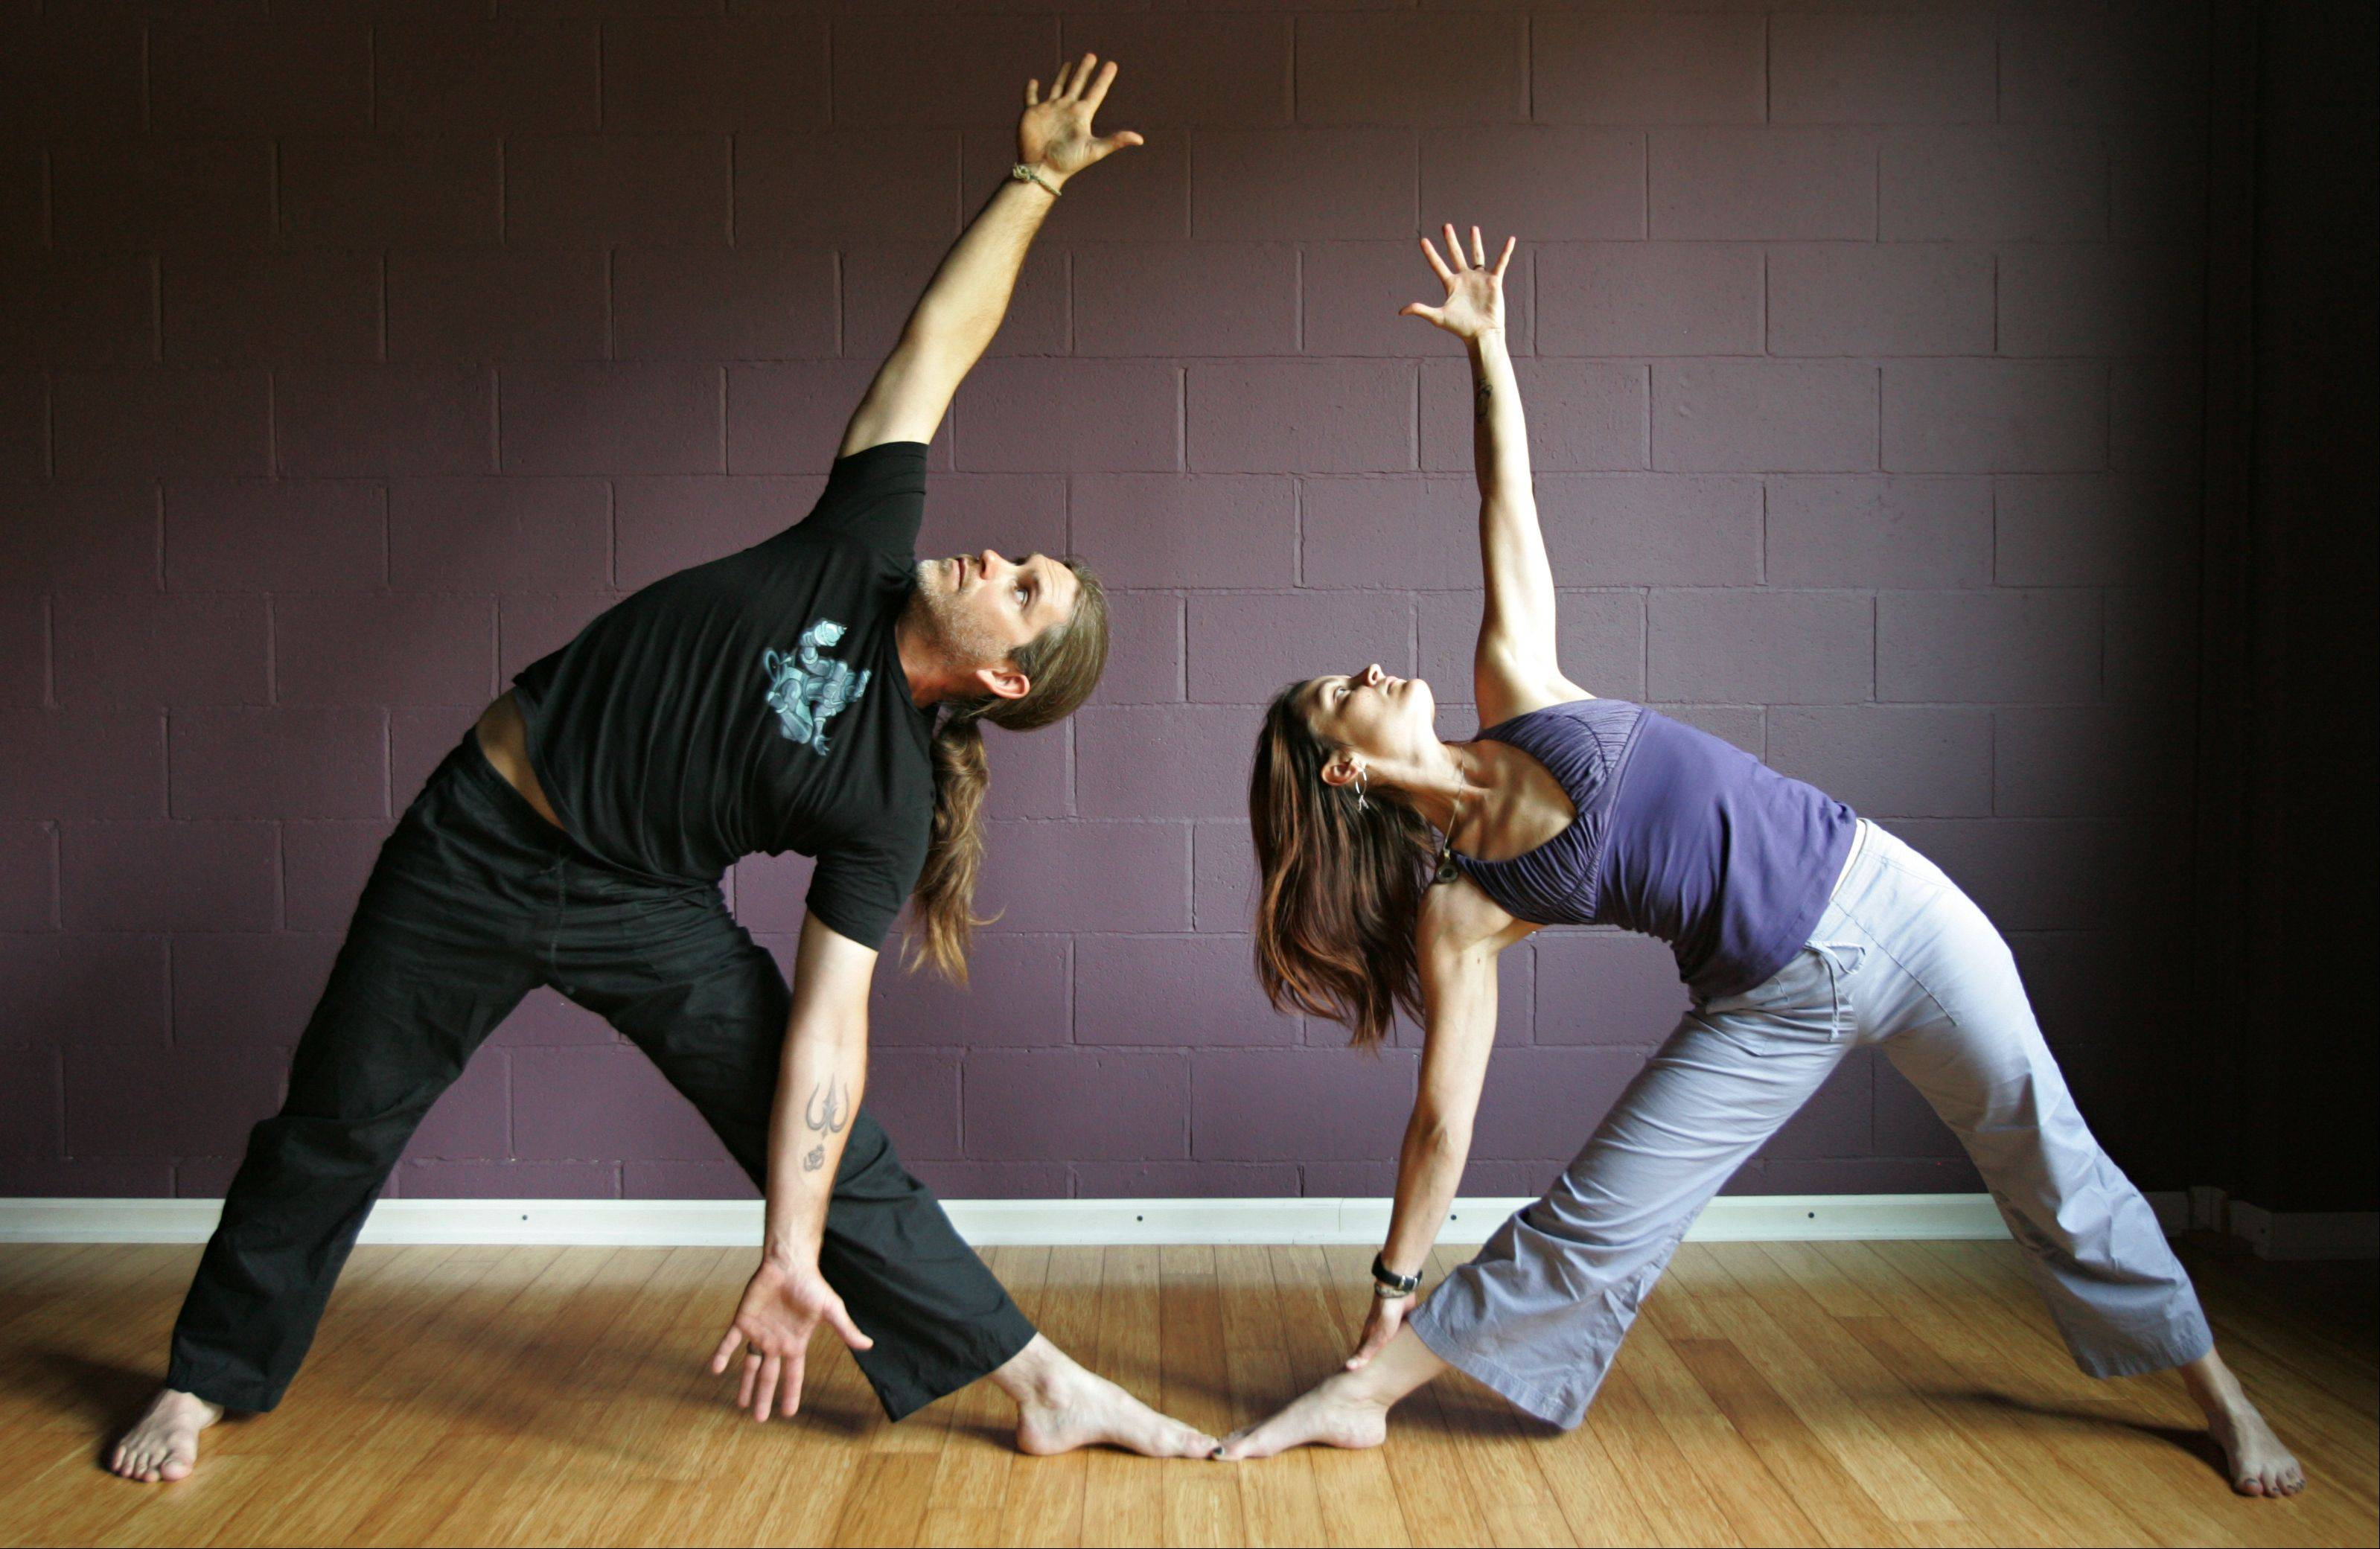 Jimmy and Lori Glazebrook at the Prana Yoga Center.